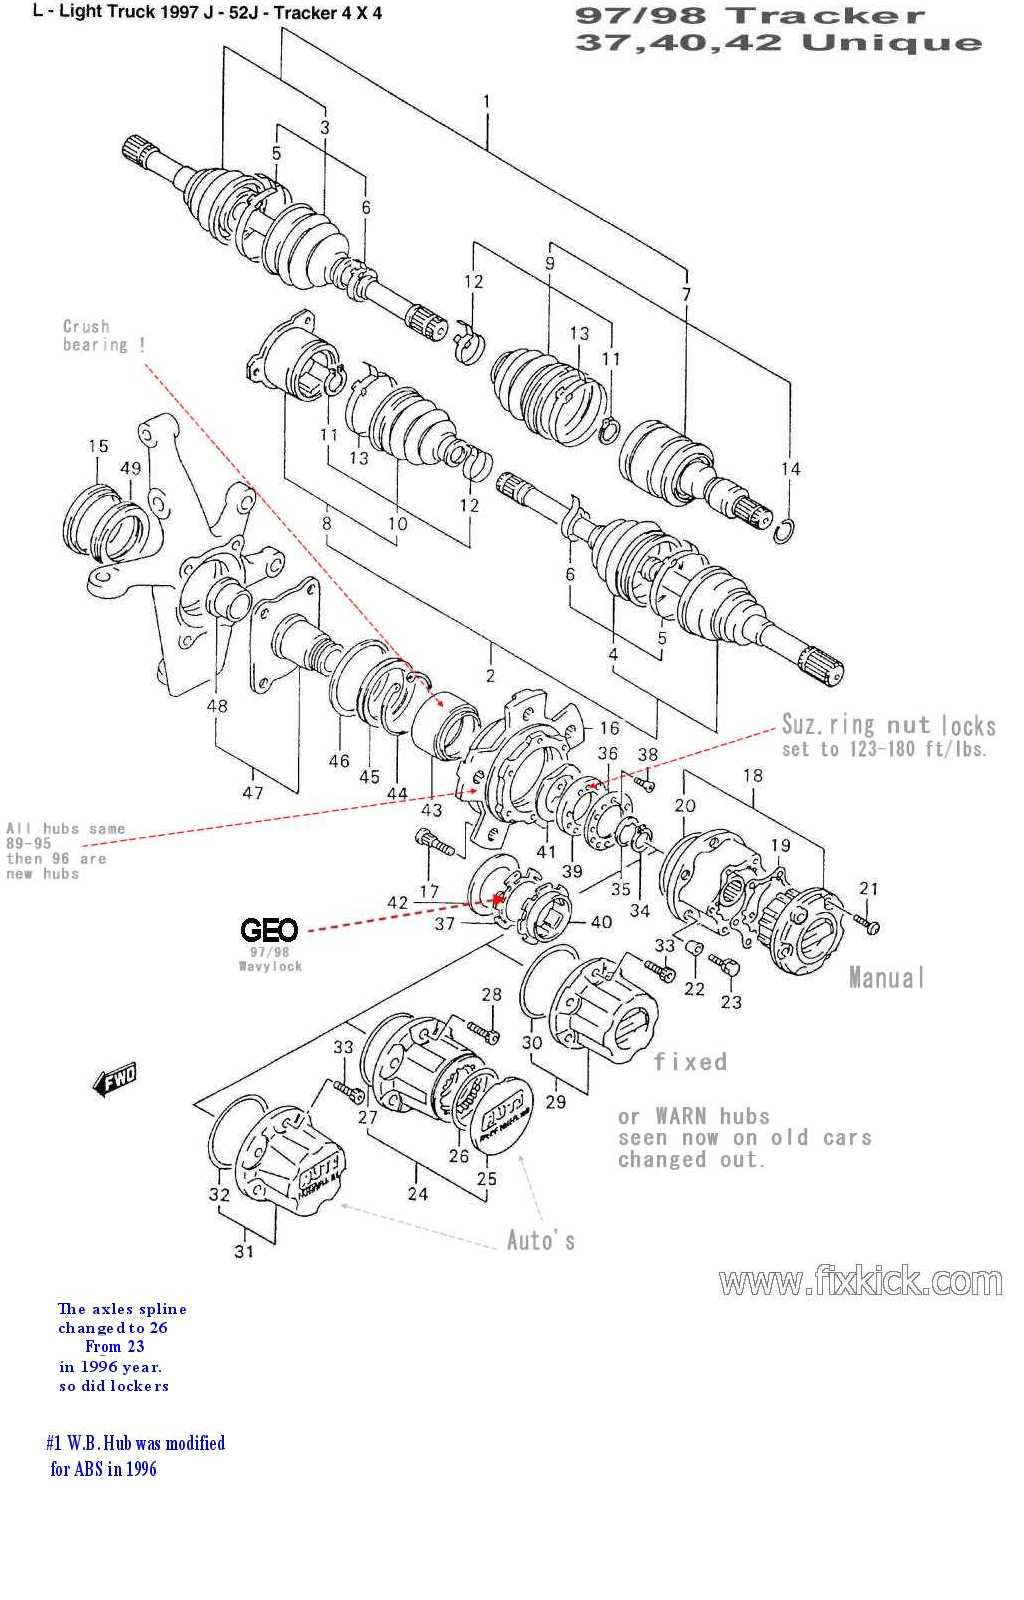 Suzuki Alternator Wiring Diagram Images Two Wire 2001 Grand Vitara 97 98spindle Locs On